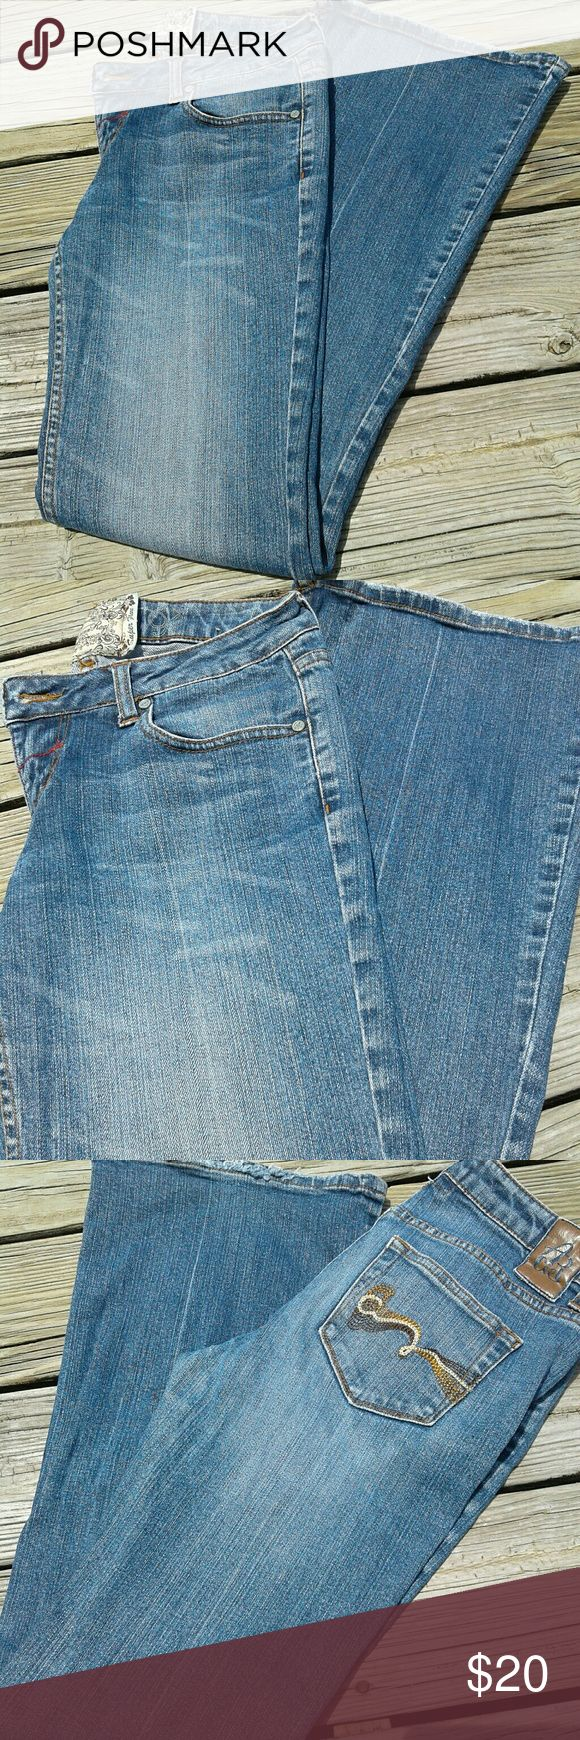 ♨New Listing♨American Rag Jeans American Rag Jeans Great Fitting Slightly Frayed Bottoms Size 3 Regular Super Flare Great Condition American Rag  Jeans Flare & Wide Leg